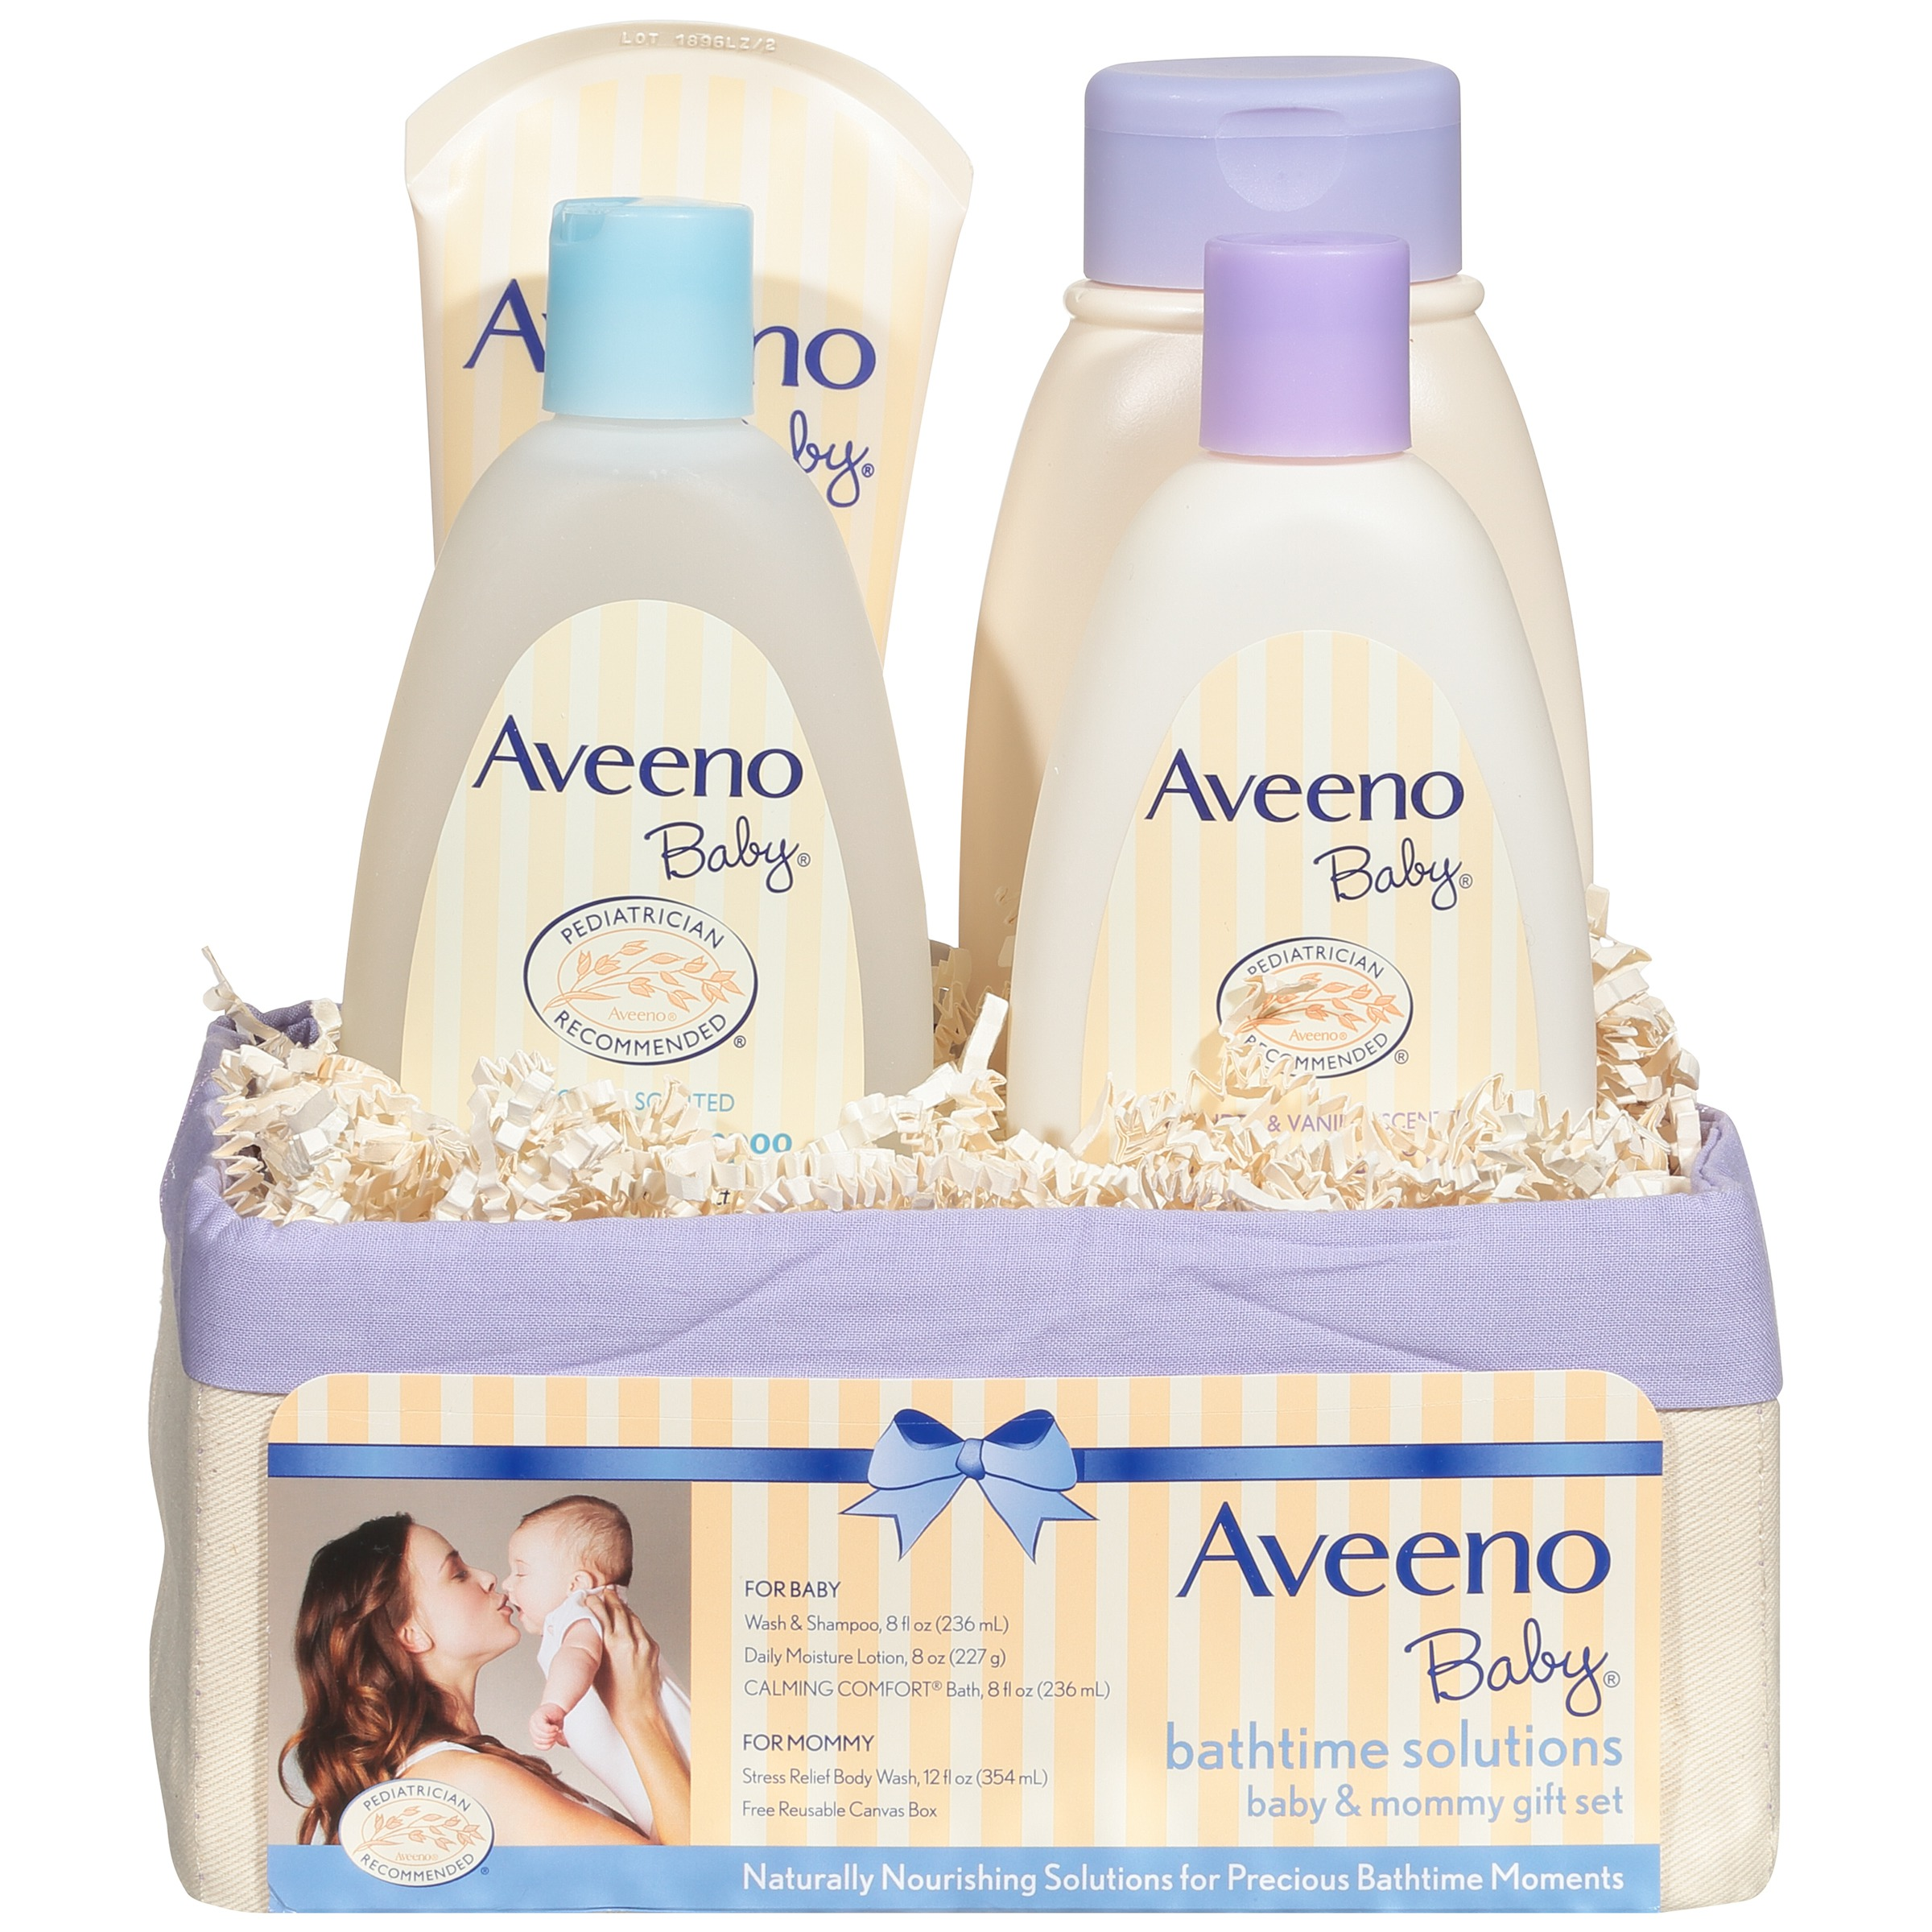 Aveeno Baby Daily Bath Time Solutions Gift Set To Prevent Dry Skin - Walmart.com